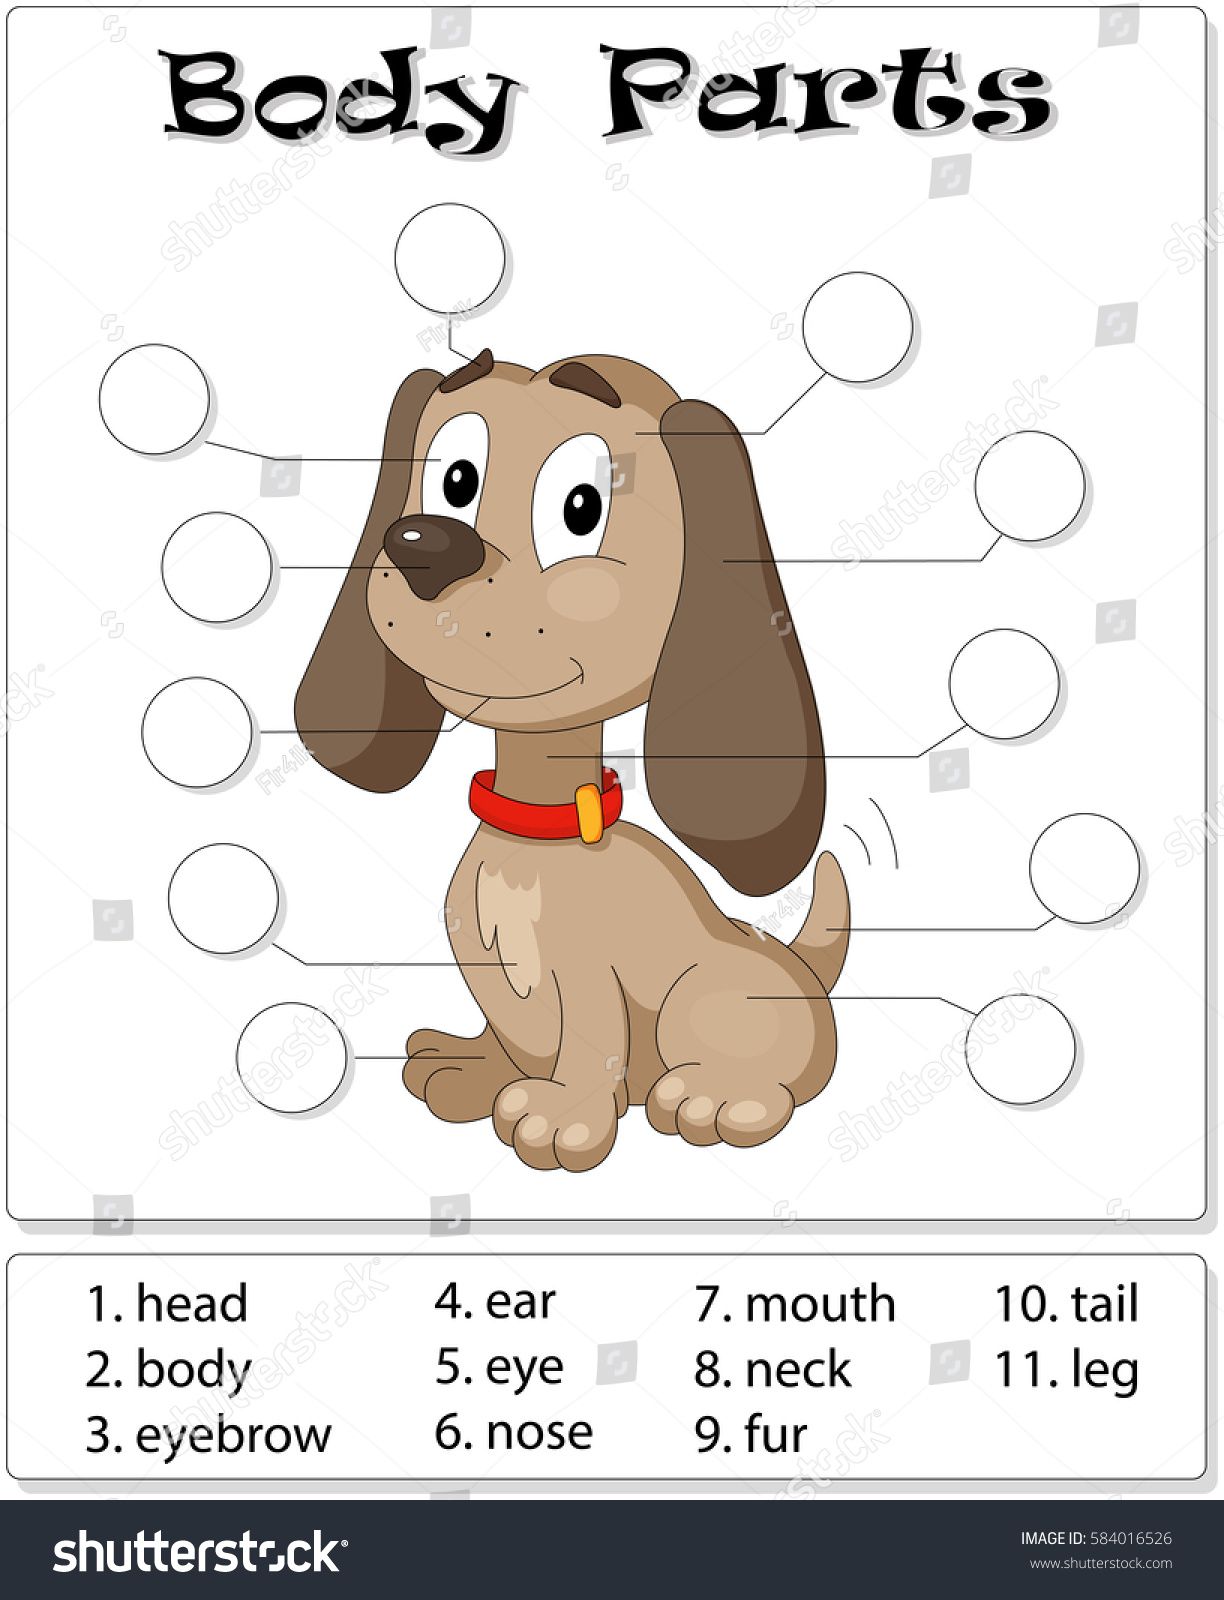 Dog Body Parts Animal Anatomy English Stock Vector